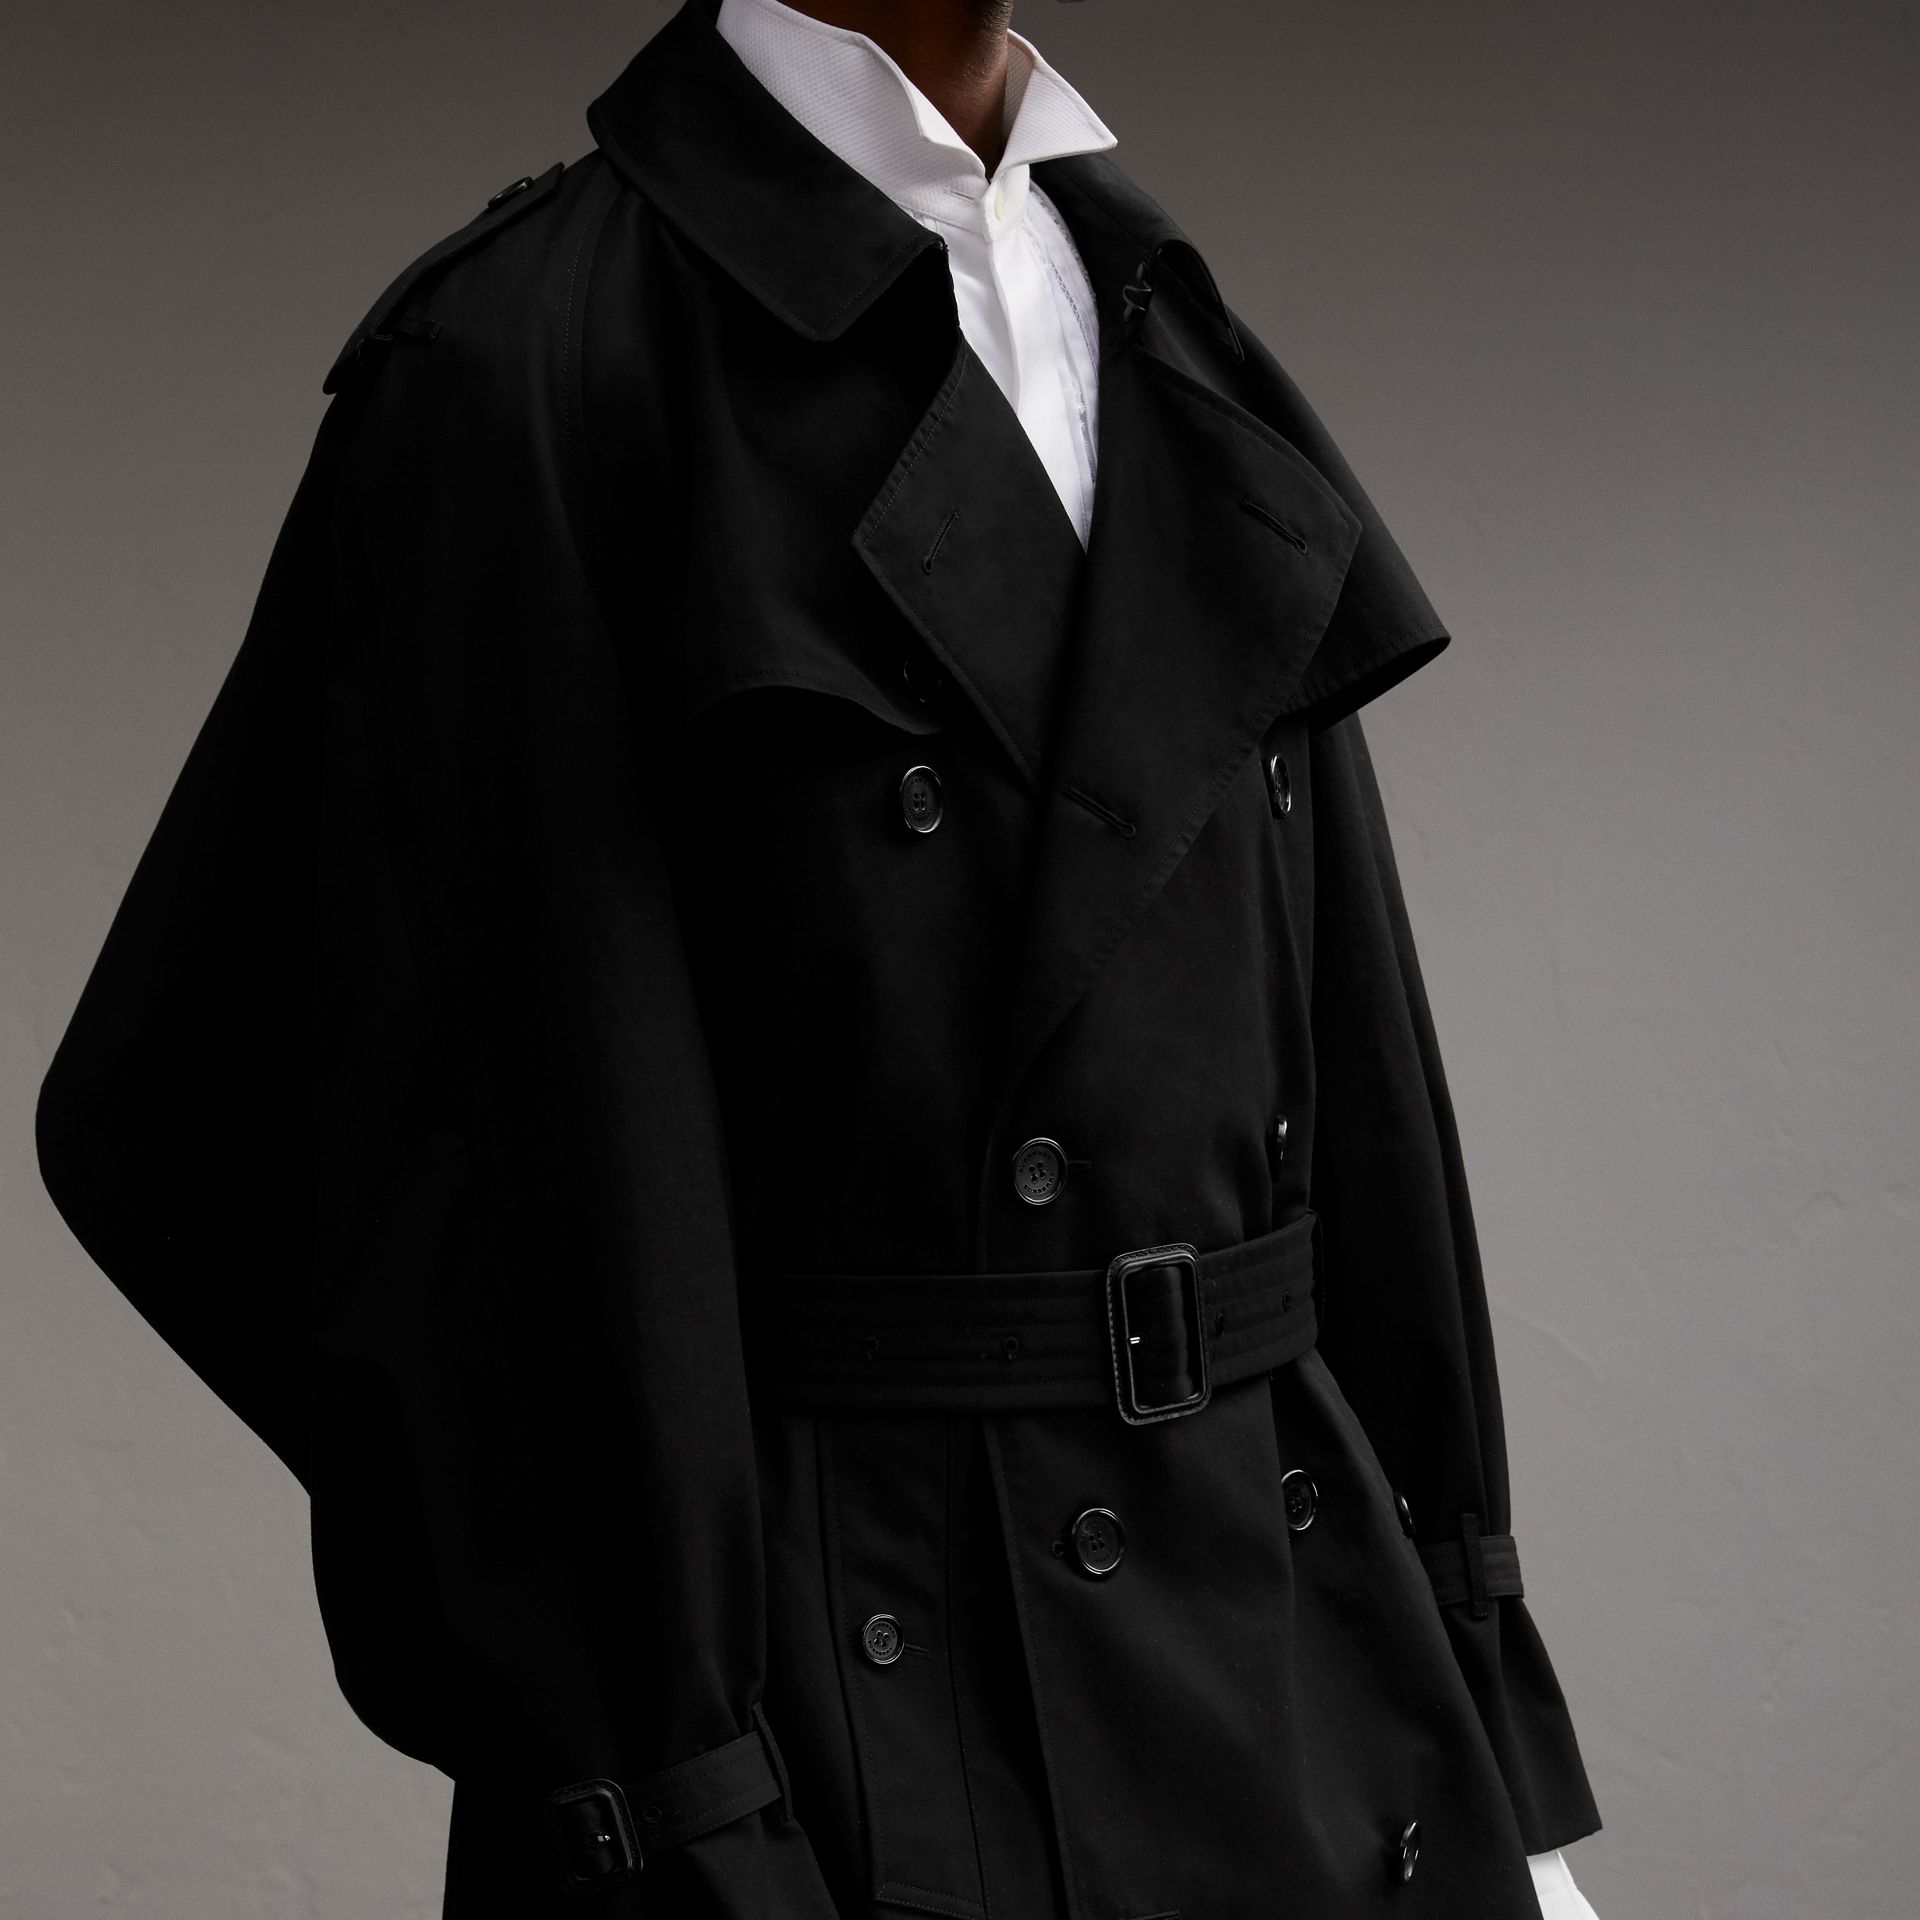 Cotton Gabardine Sculptural Trench Coat - Men | Burberry Hong Kong - gallery image 5